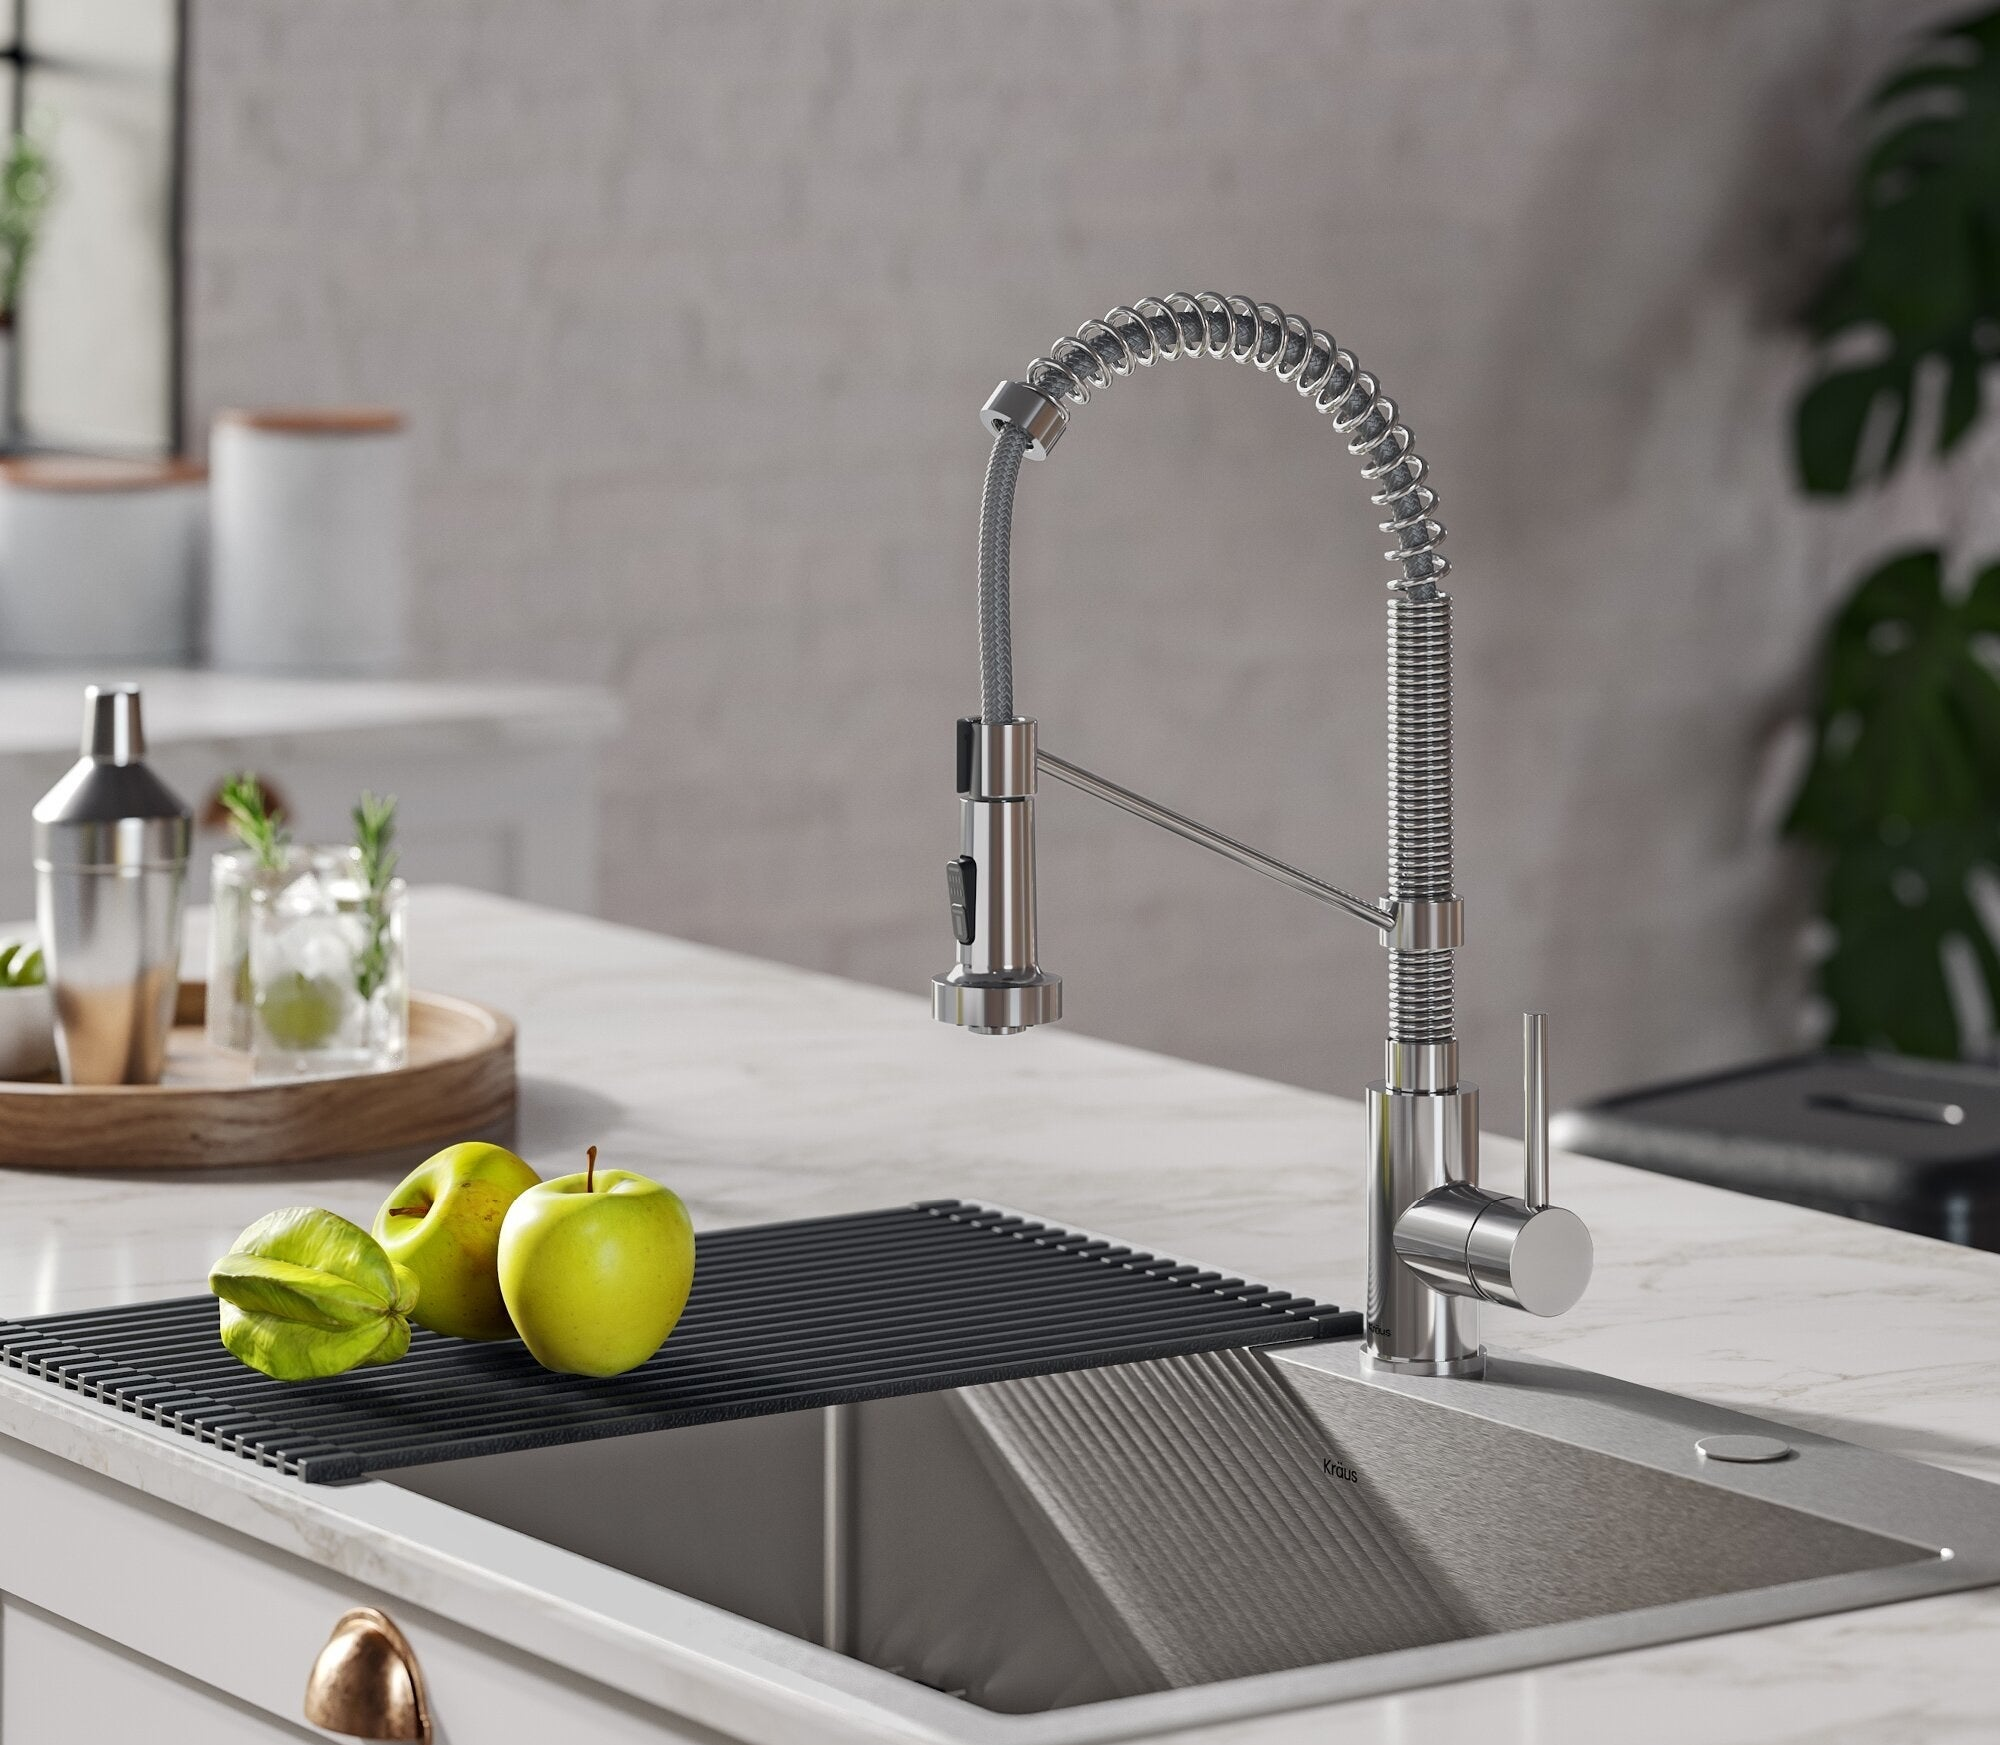 A silver faucet above a sink at a kitchen counter with green apples next to it